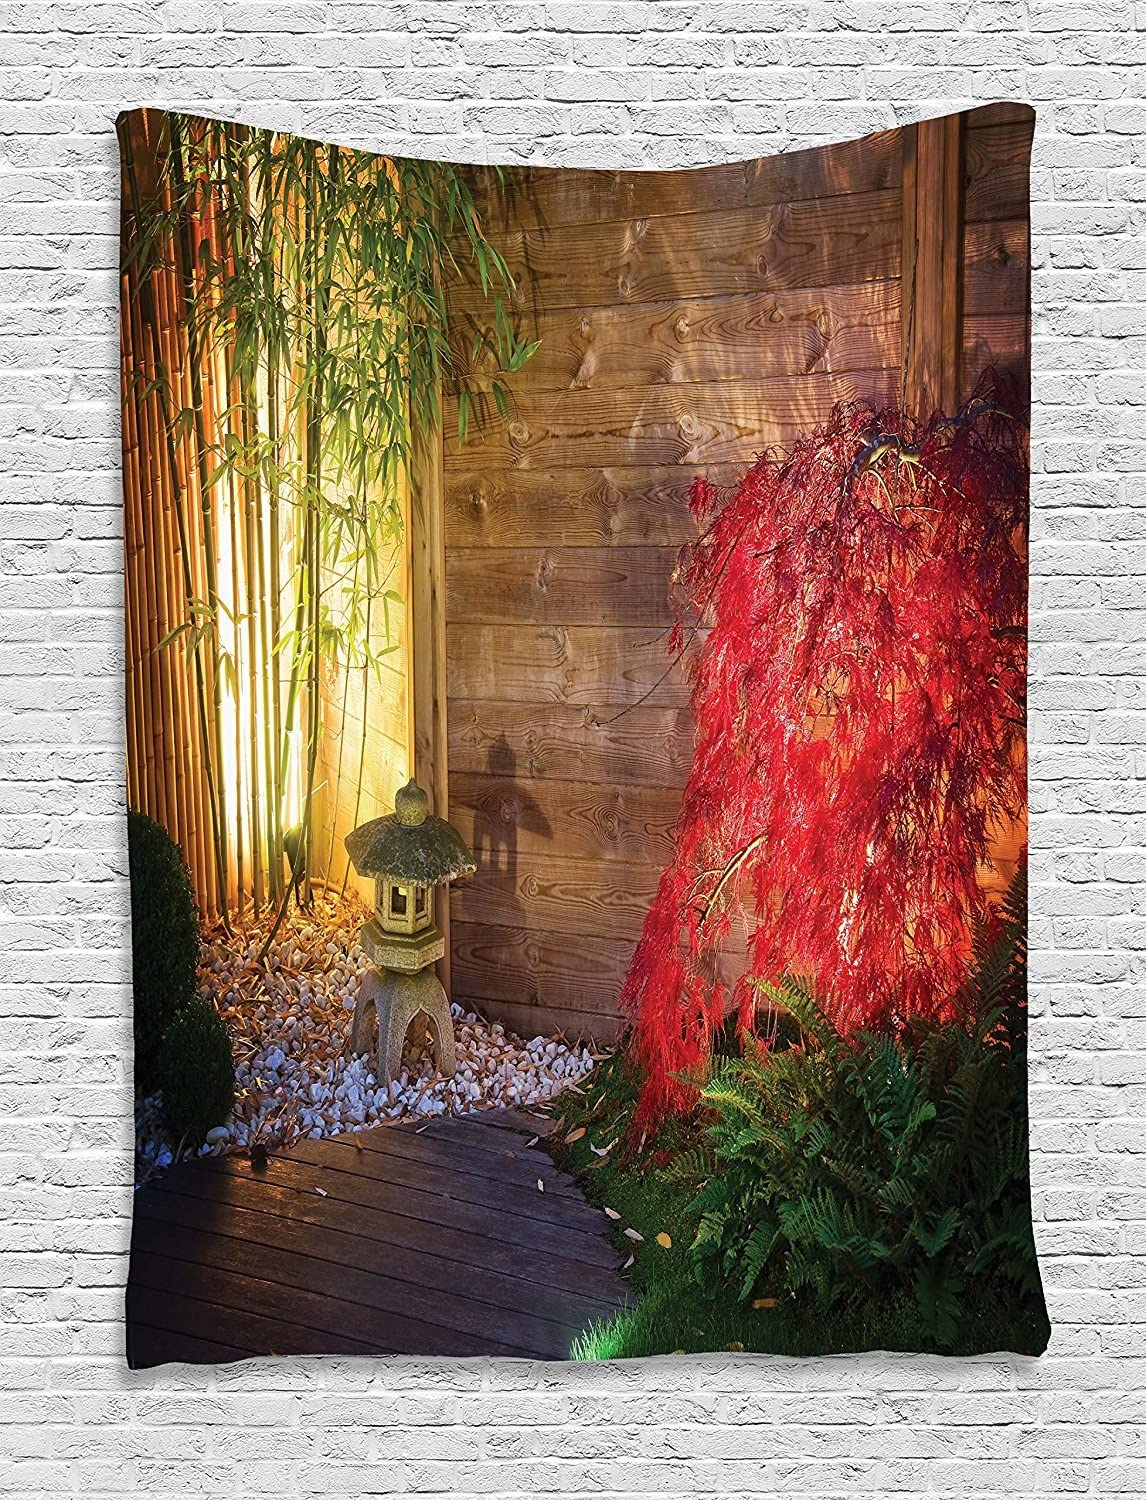 JAMES STRAIN Garden Tapestry, Japanese Stone Lantern and Red Maple Tree in an Autumnal Zen Garden Bamboo Trees, Wall Hanging for Bedroom Living Room Dorm, 60 W X 80 L Inches, Multicolor